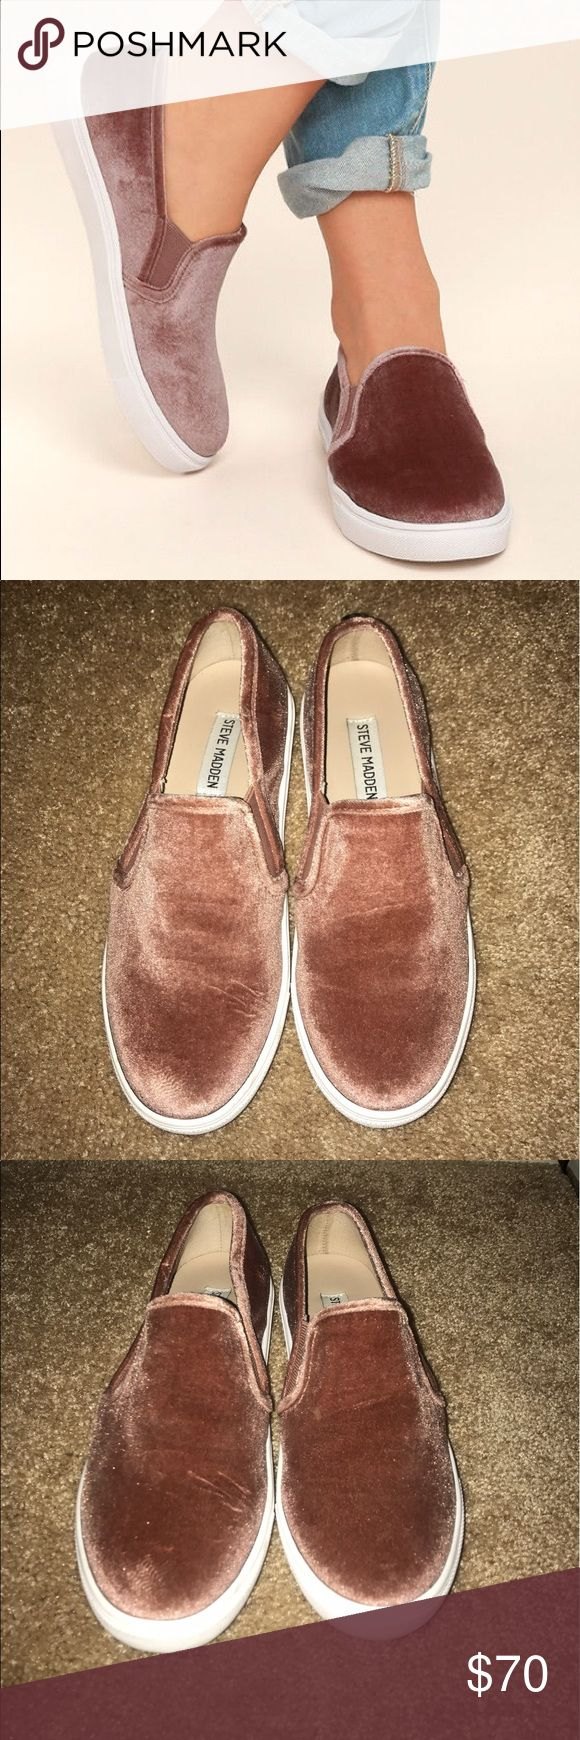 Steve Madden Ecntrcv Slip-on Sneaker Blush Slip-on Steve Madden blush pink Velvet sneakers. Worn once, in perfect condition purchased from the Steve Madden store. Steve Madden Shoes Sneakers